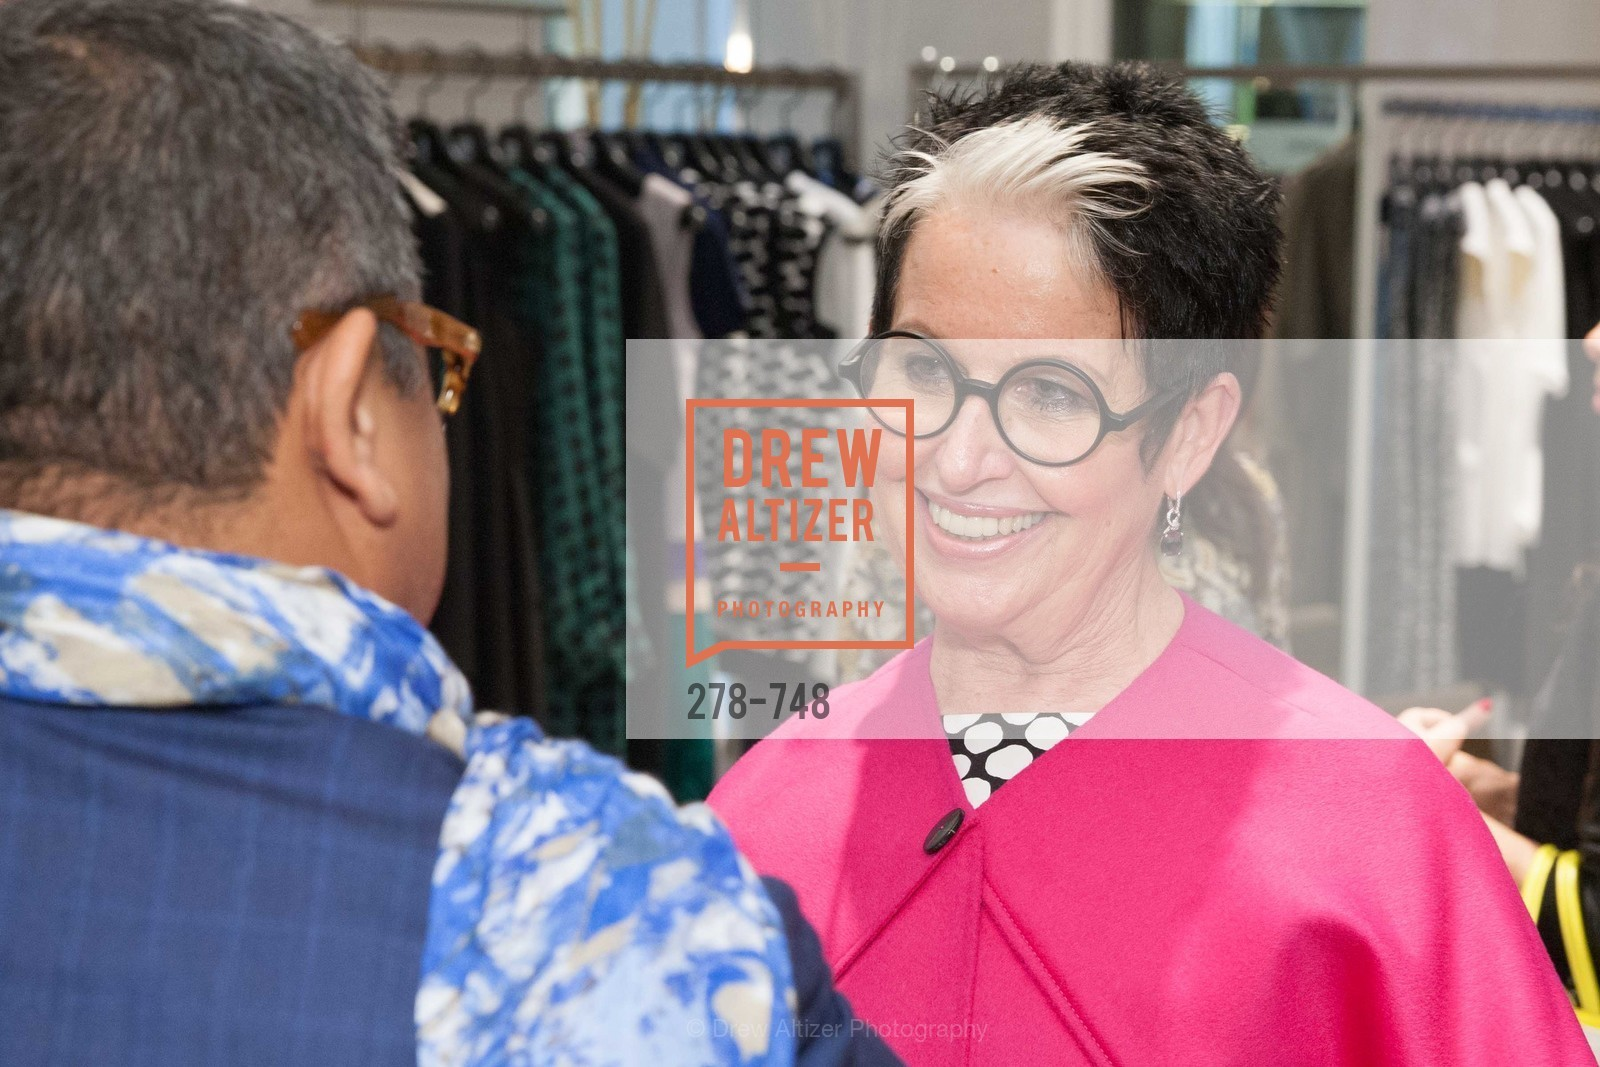 Karen Kubin, PETER COPPING'S Personal Appearance at SAKS FIFTH AVENUE, US, May 22nd, 2015,Drew Altizer, Drew Altizer Photography, full-service agency, private events, San Francisco photographer, photographer california